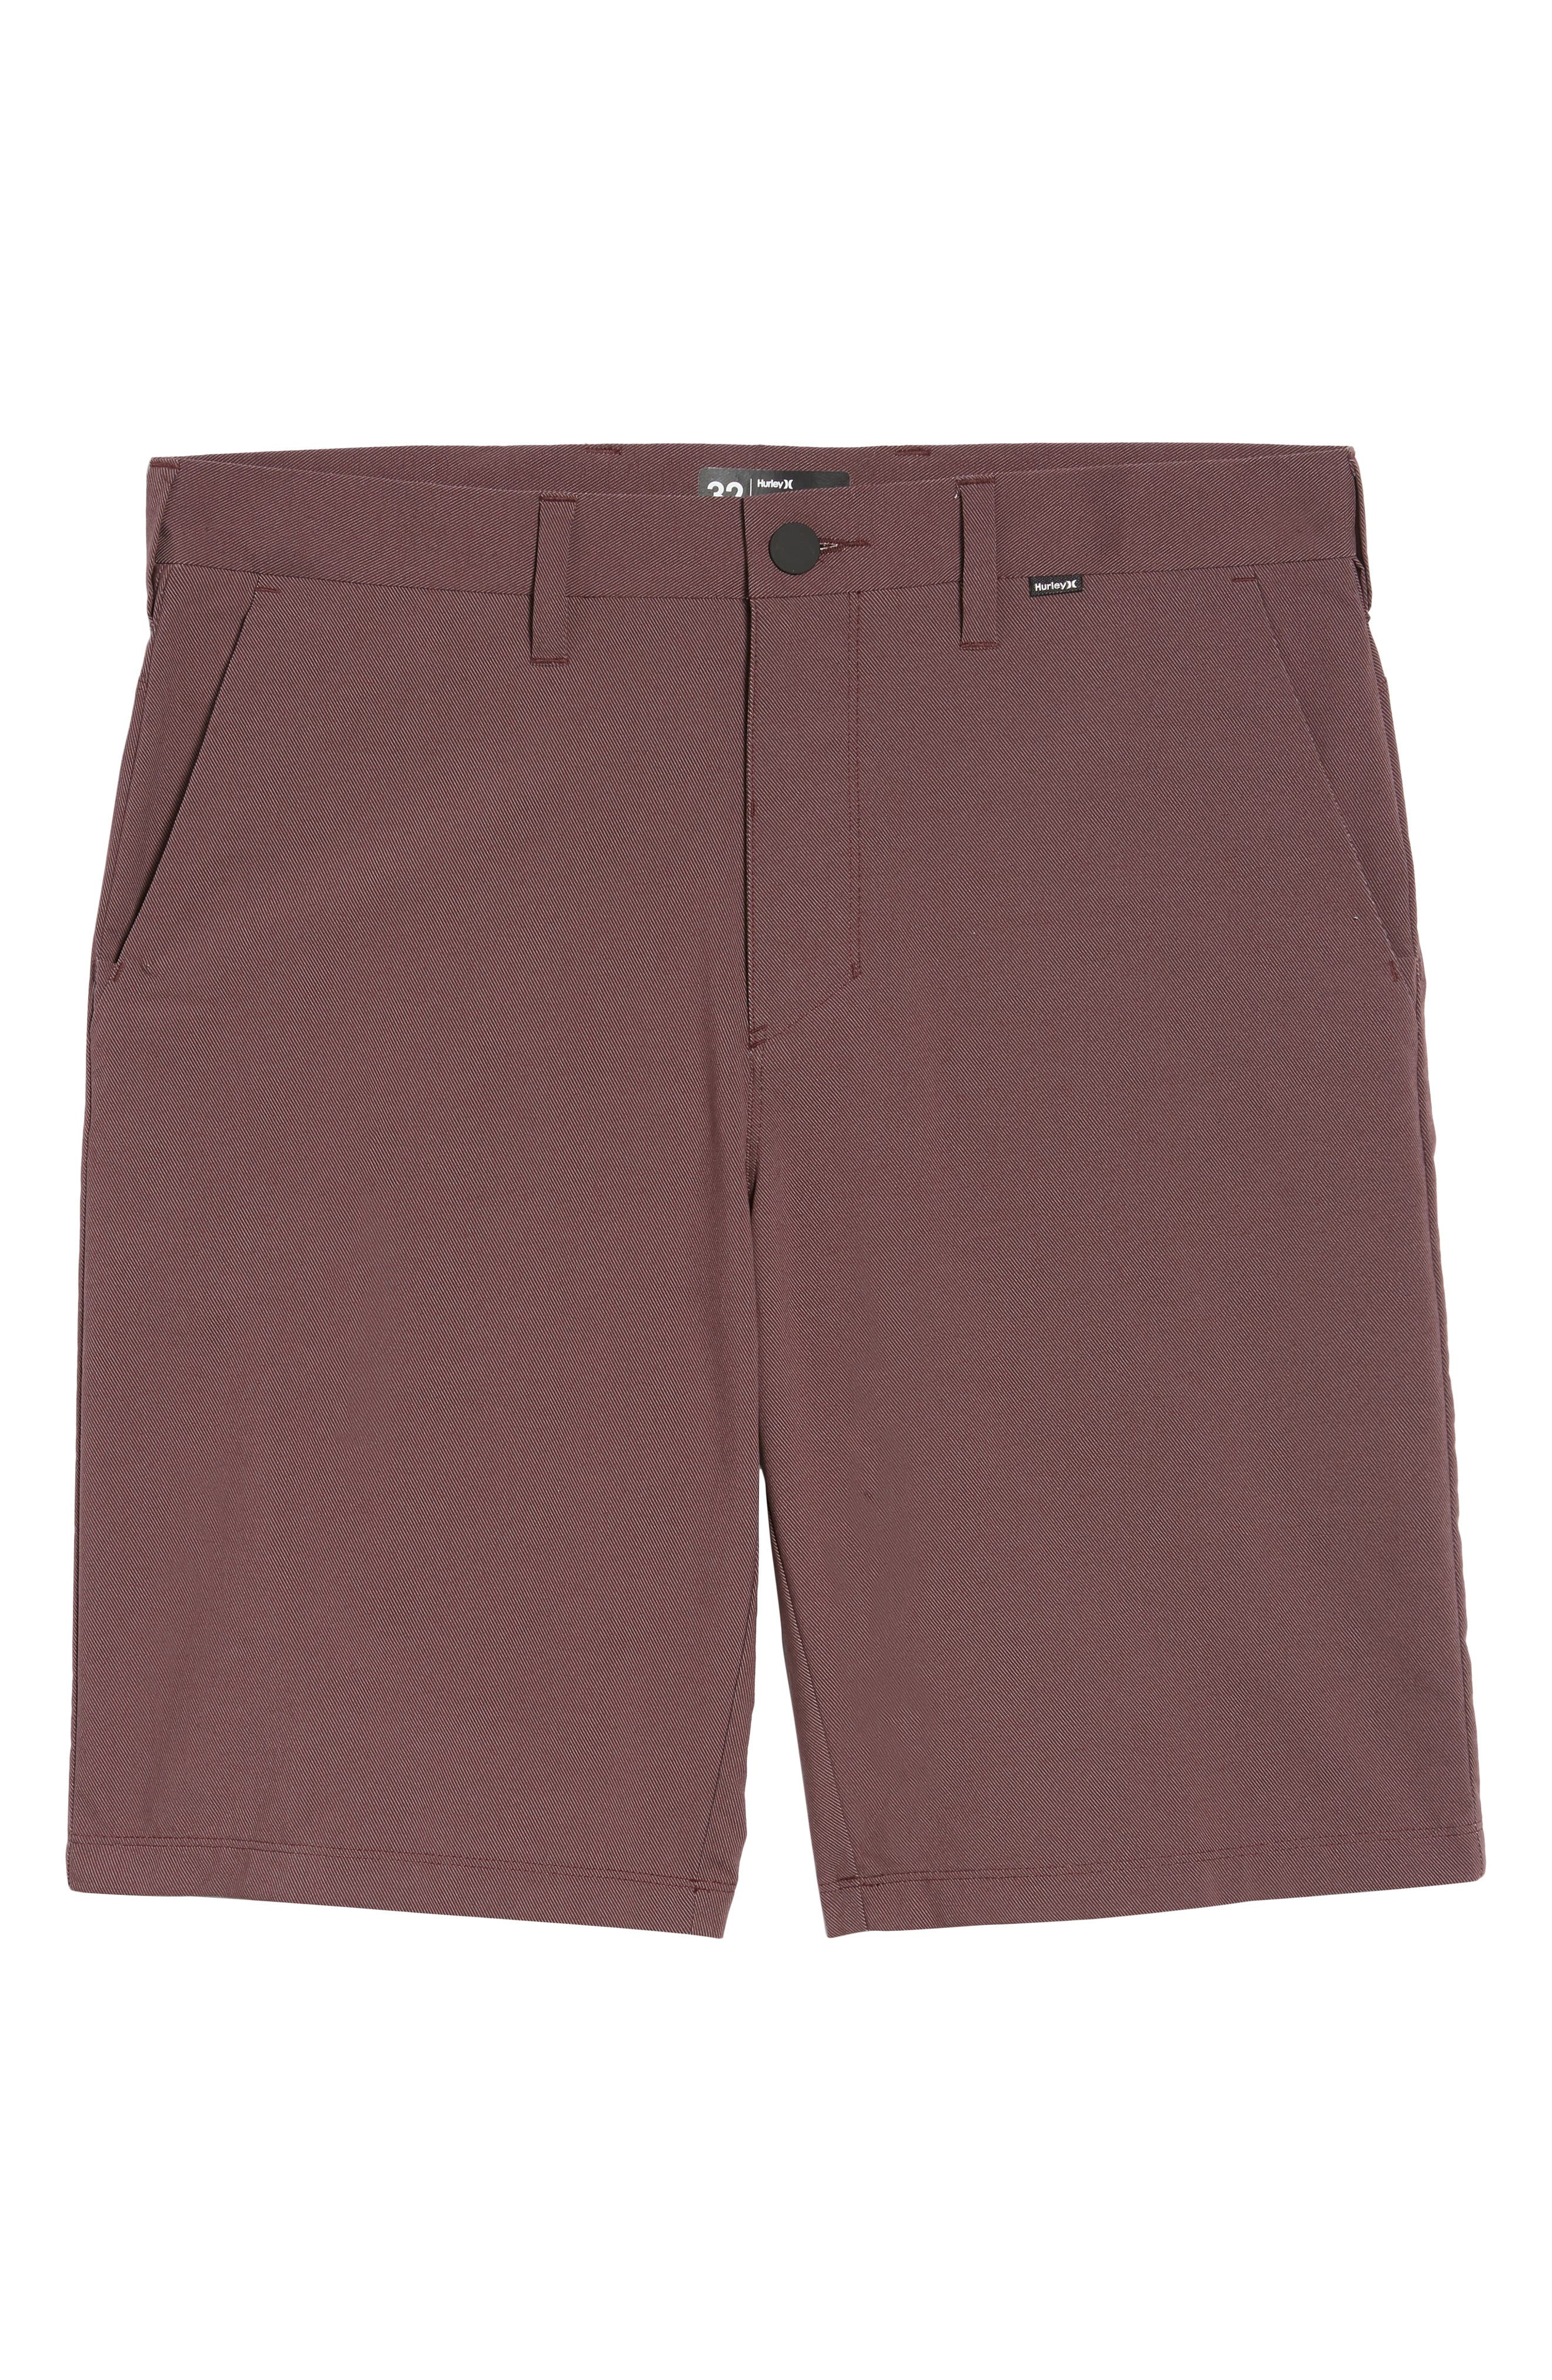 'Dry Out' Dri-FIT<sup>™</sup> Chino Shorts,                             Alternate thumbnail 214, color,